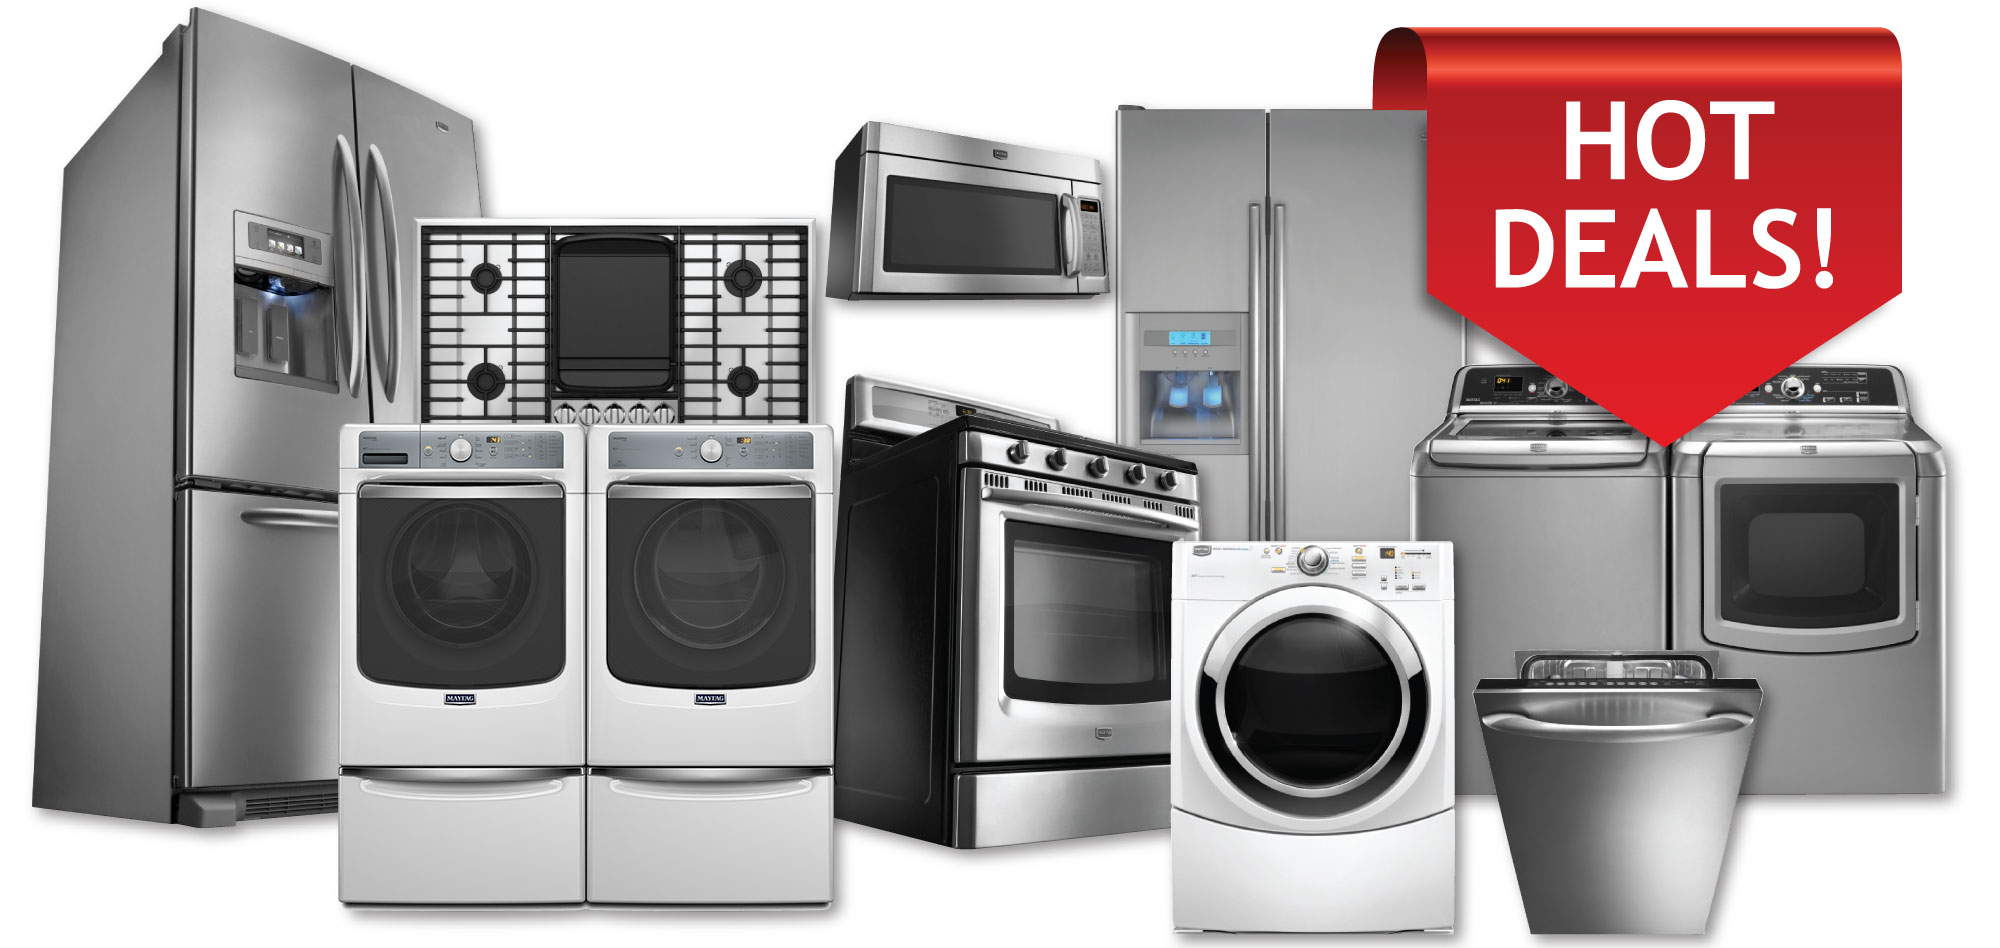 Home Appliances, Kitchen